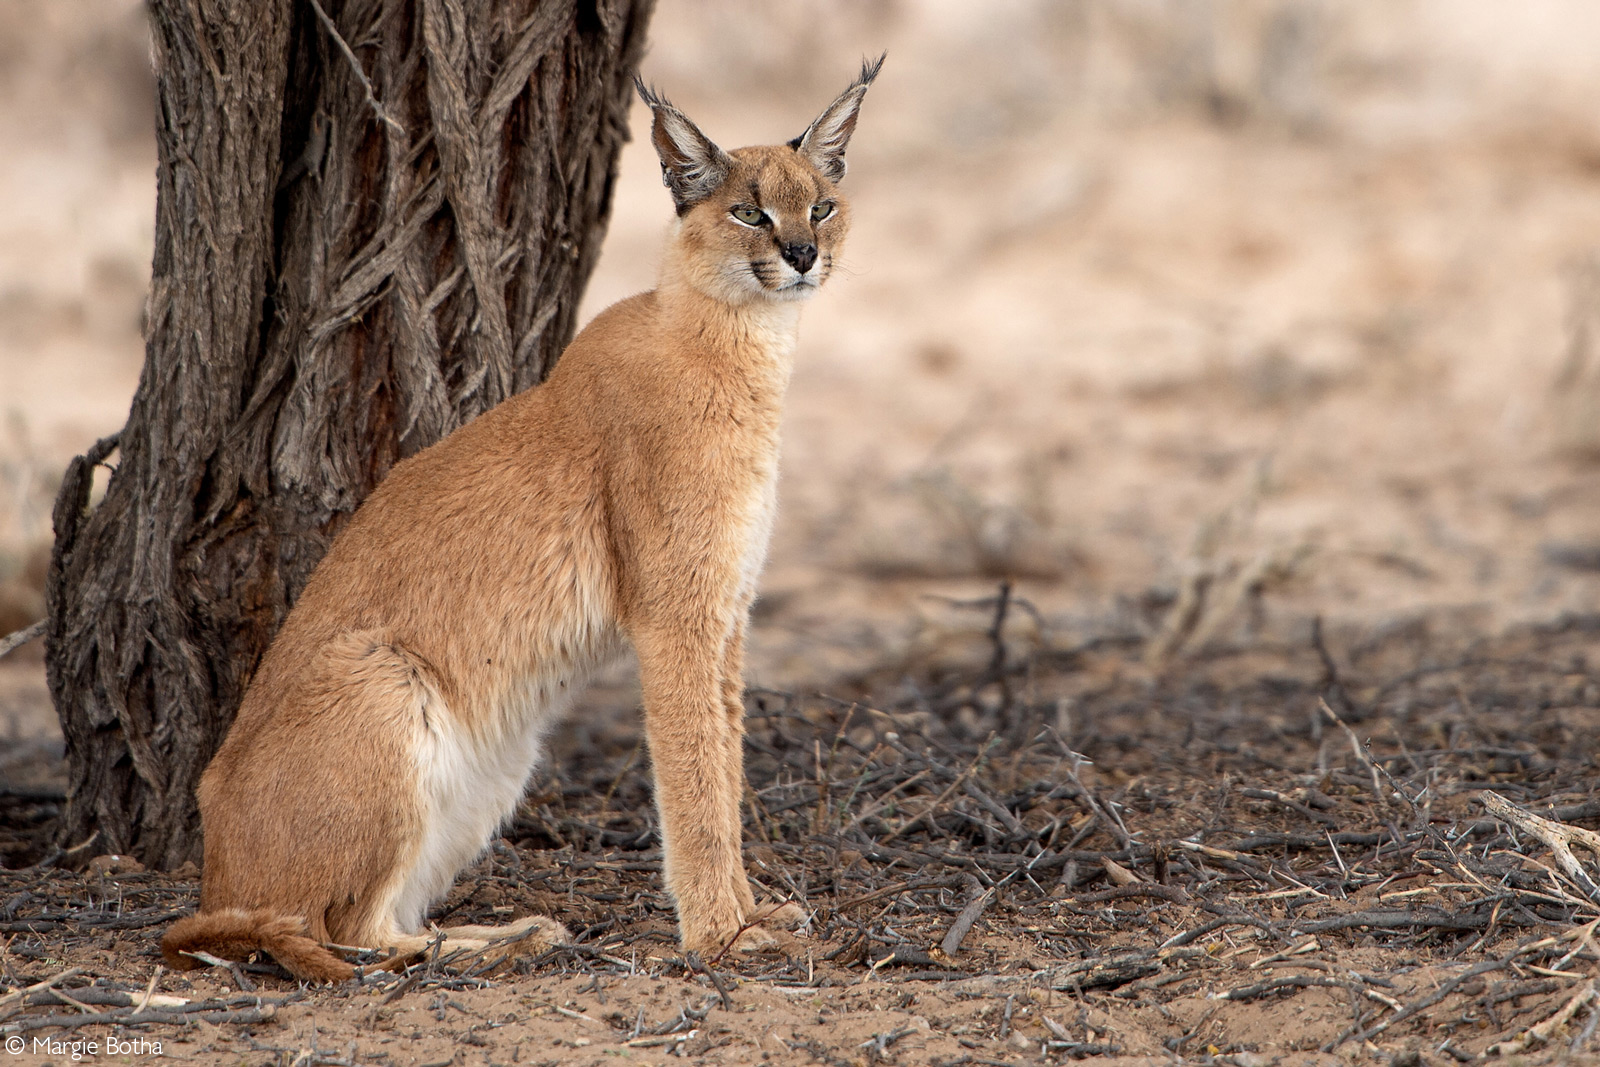 A caracal spotted by the Rooiputs waterhole. Kgalagadi Transfrontier Park, South Africa © Margie Botha